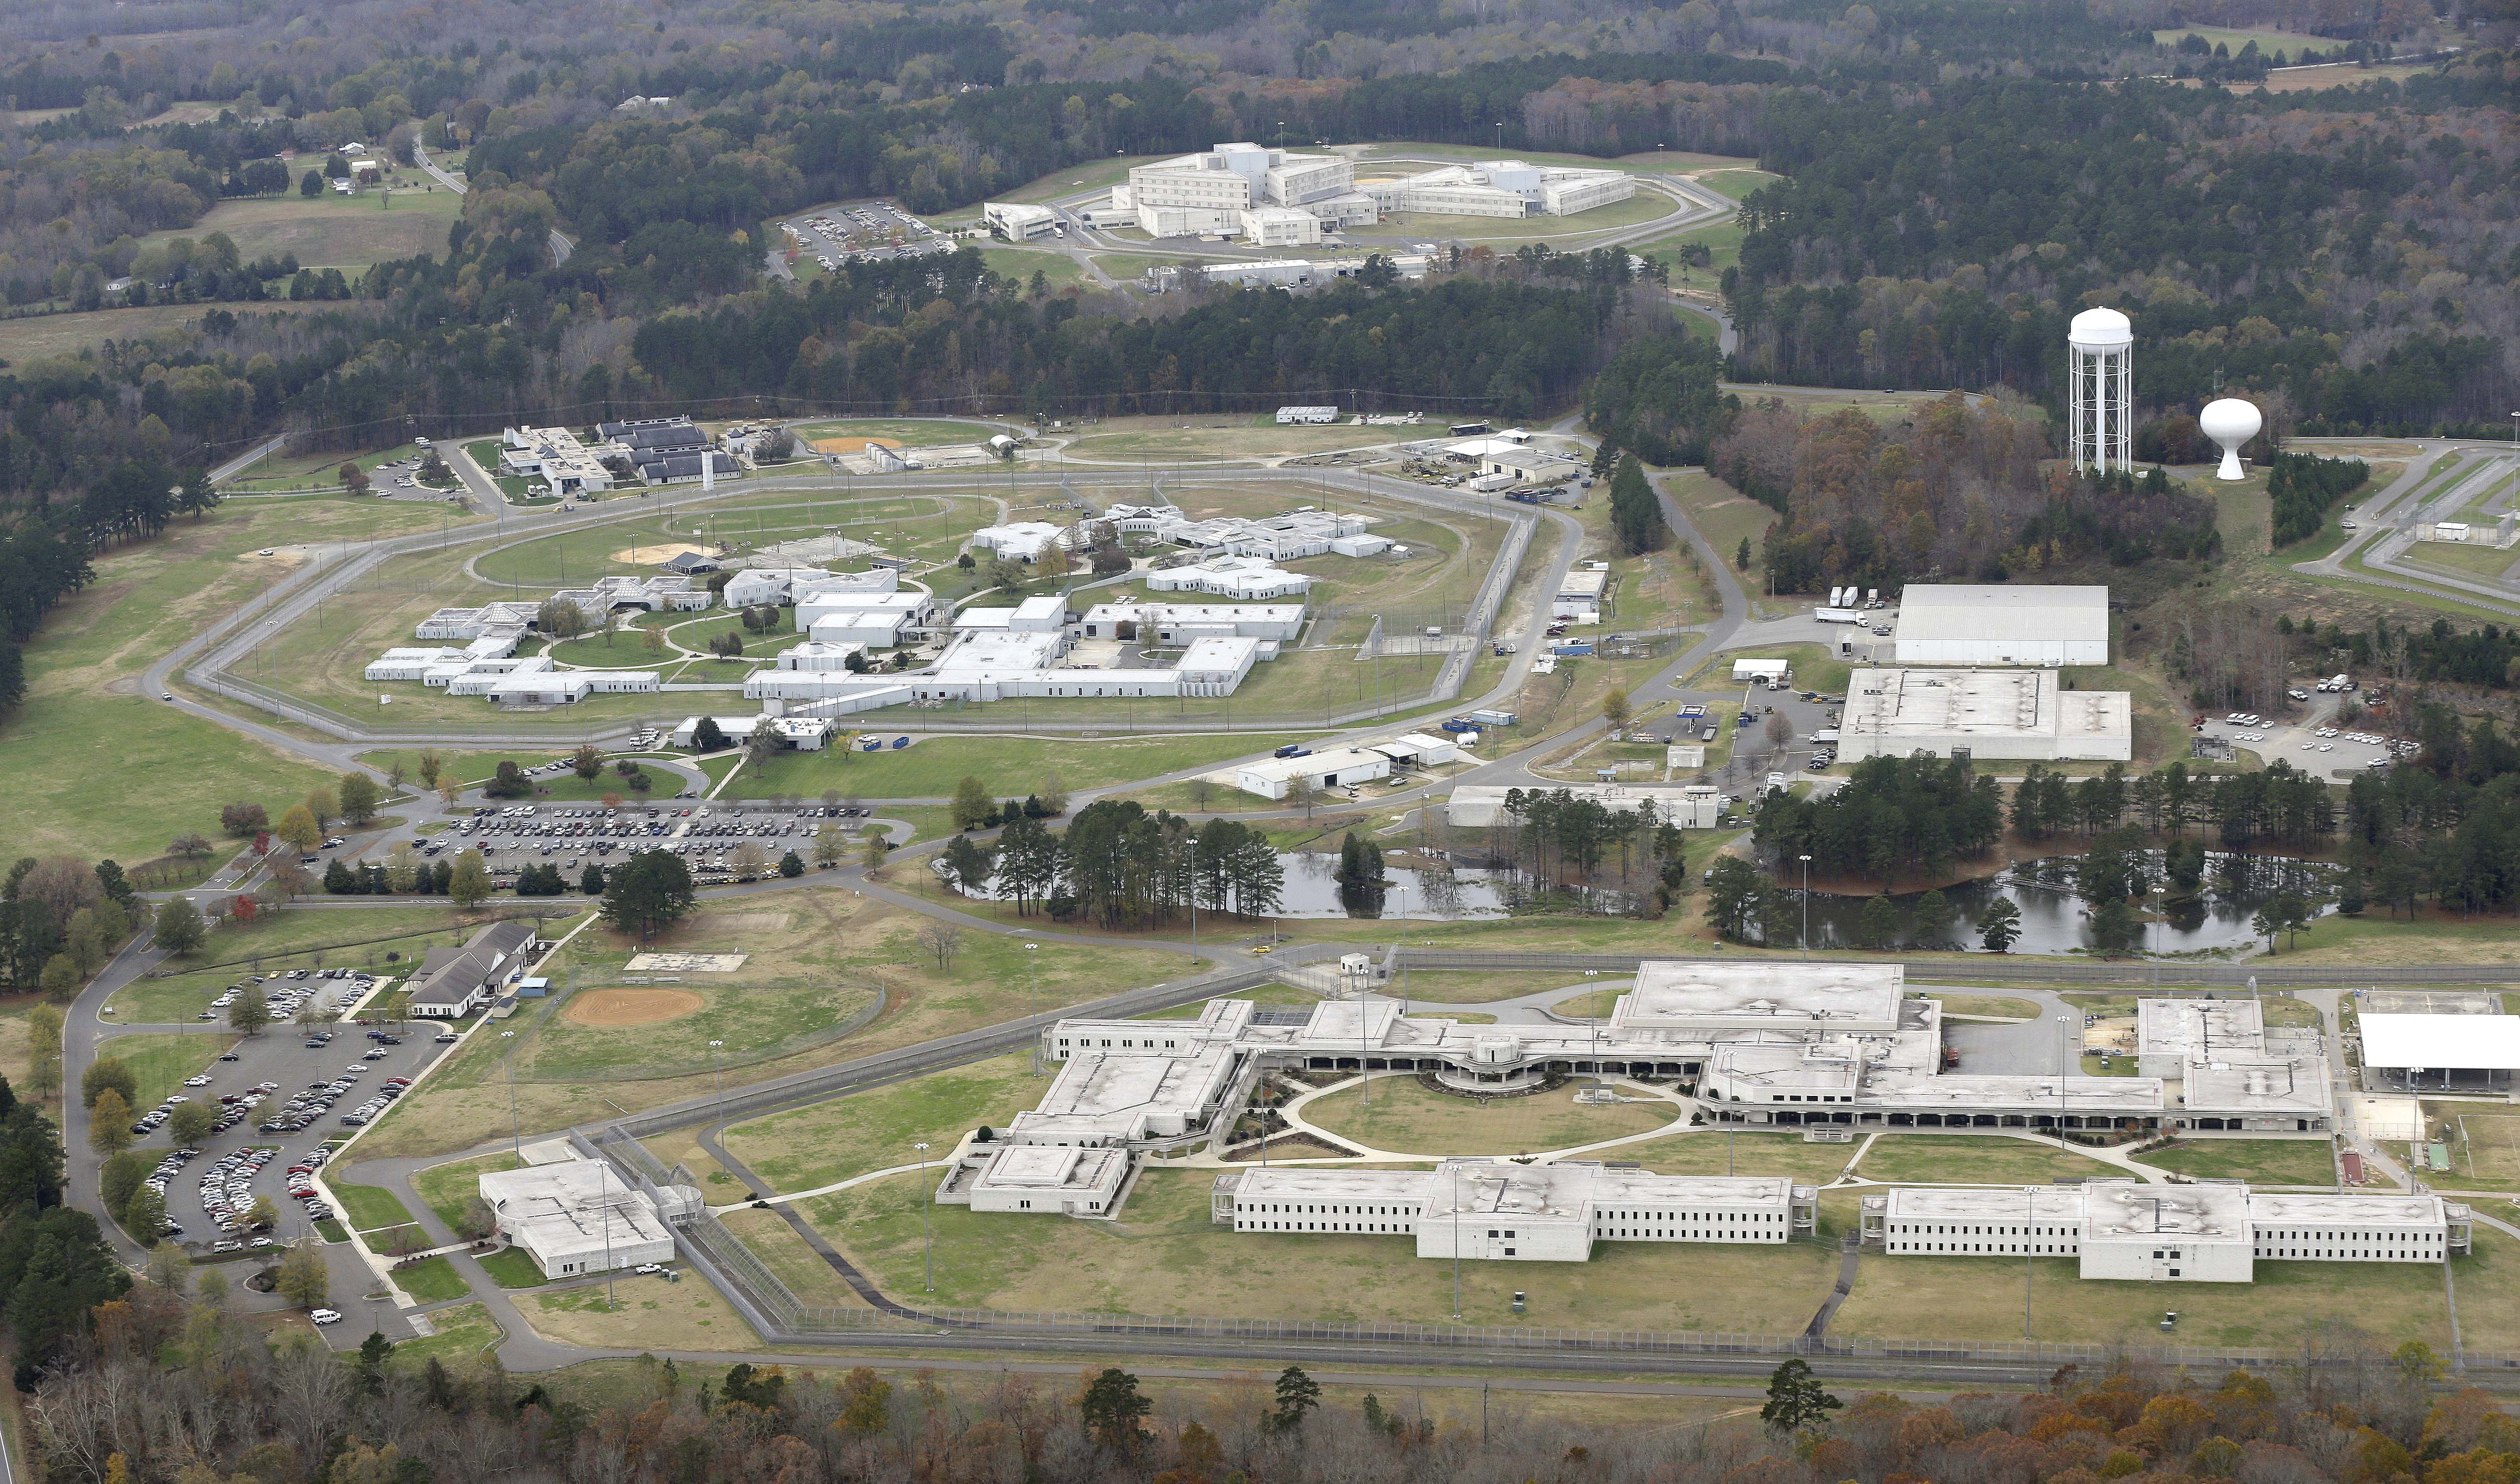 FILE - Jonathan Pollard, the Navy intelligence analyst who was arrested in 1985 for selling secrets to Israel, is scheduled to be released from the Butner Federal Correctional Complex in Butner, N.C., Nov. 20, 2015.